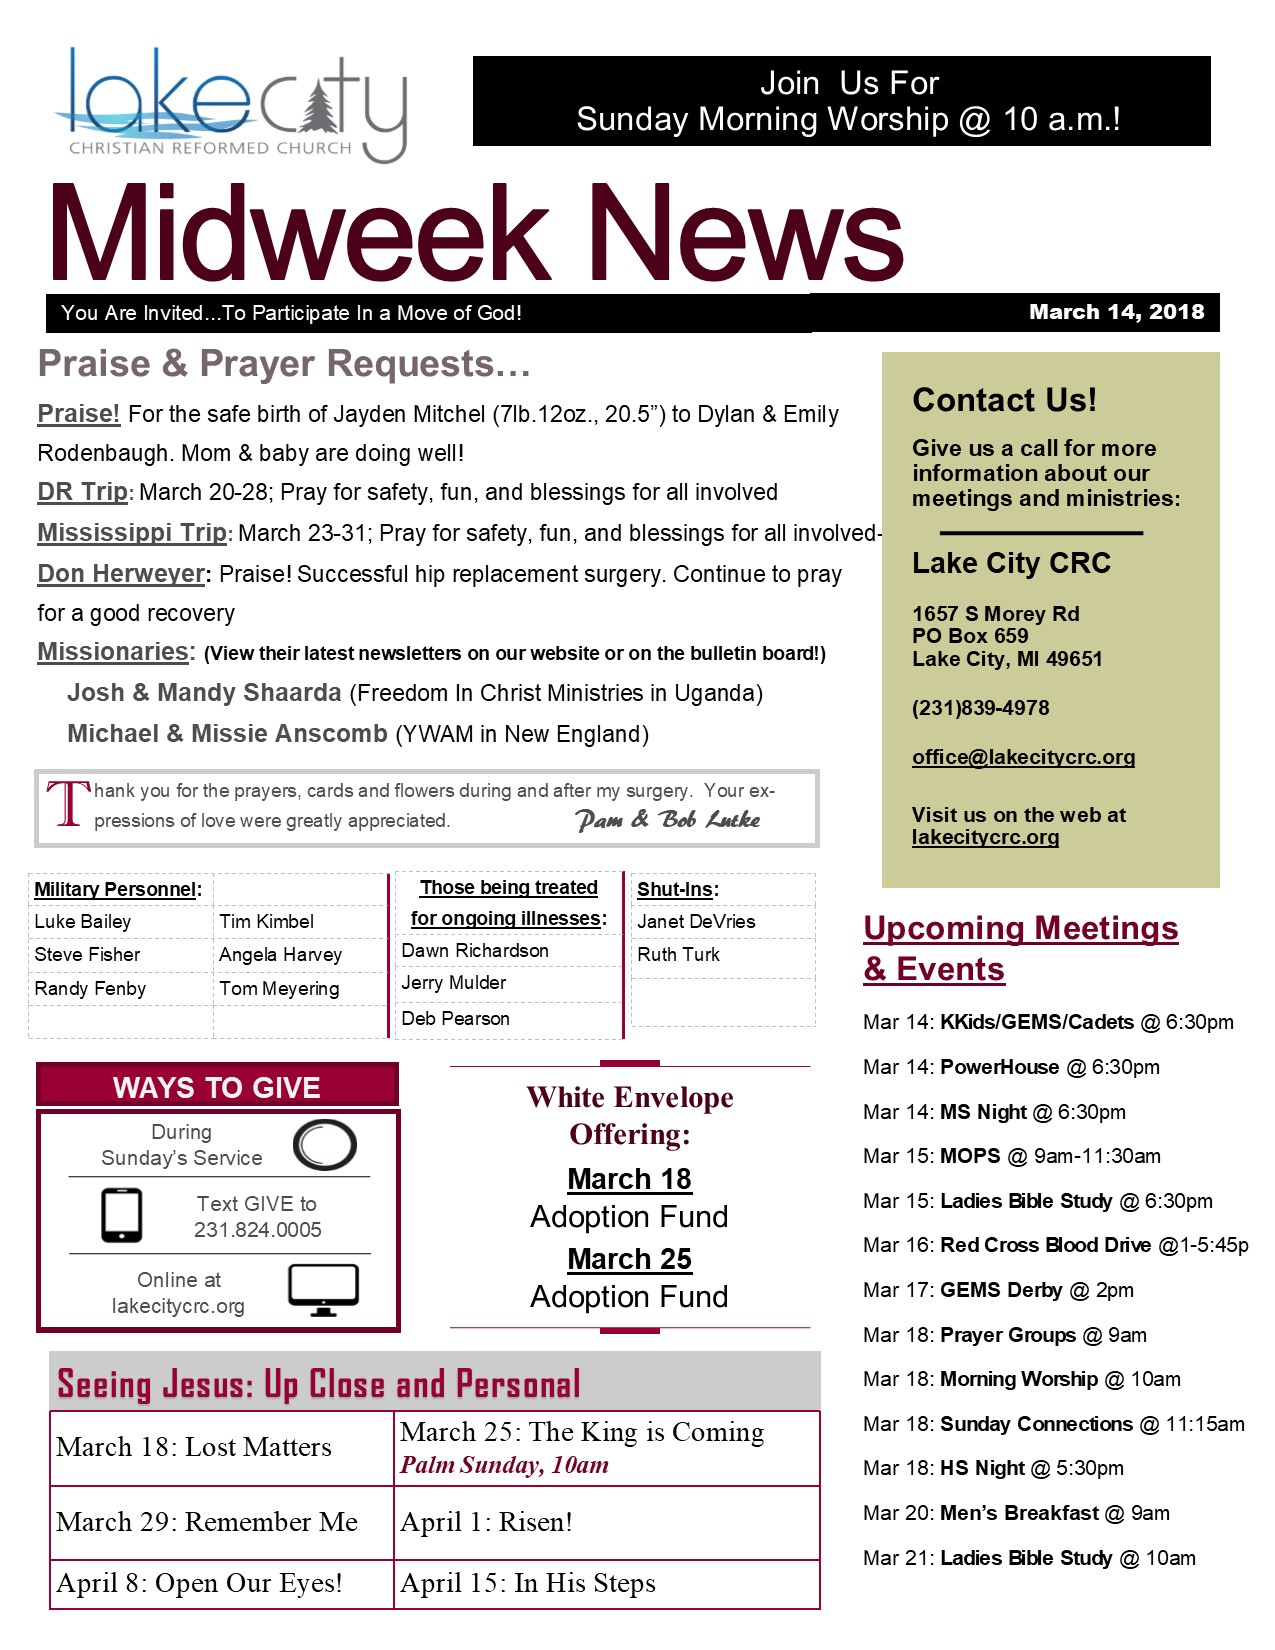 March 14, 2018 Midweek News